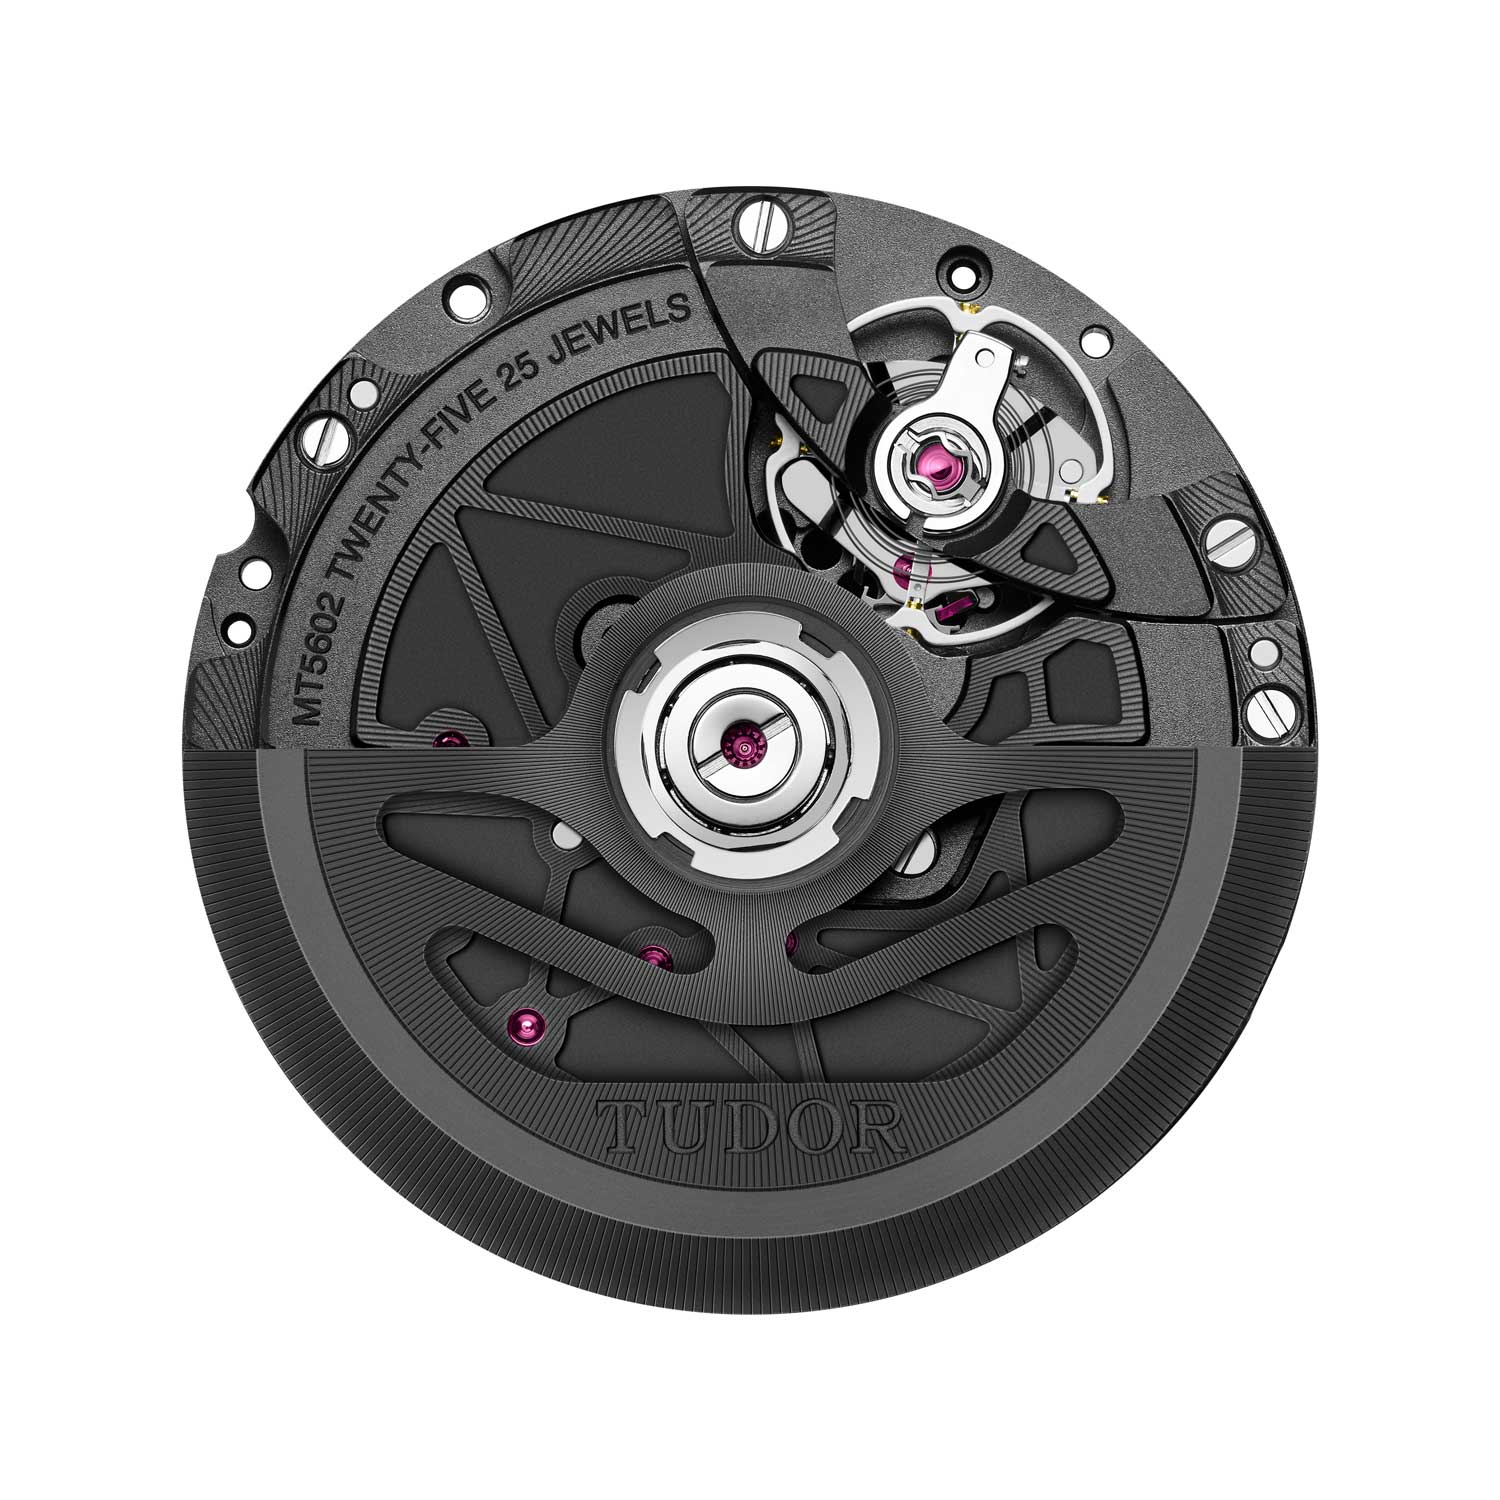 The watch is powered by a new manufacture movement, calibre MT5602-U1 with silicon hairspring that is antimagnetic up to forces of 15,000 gauss